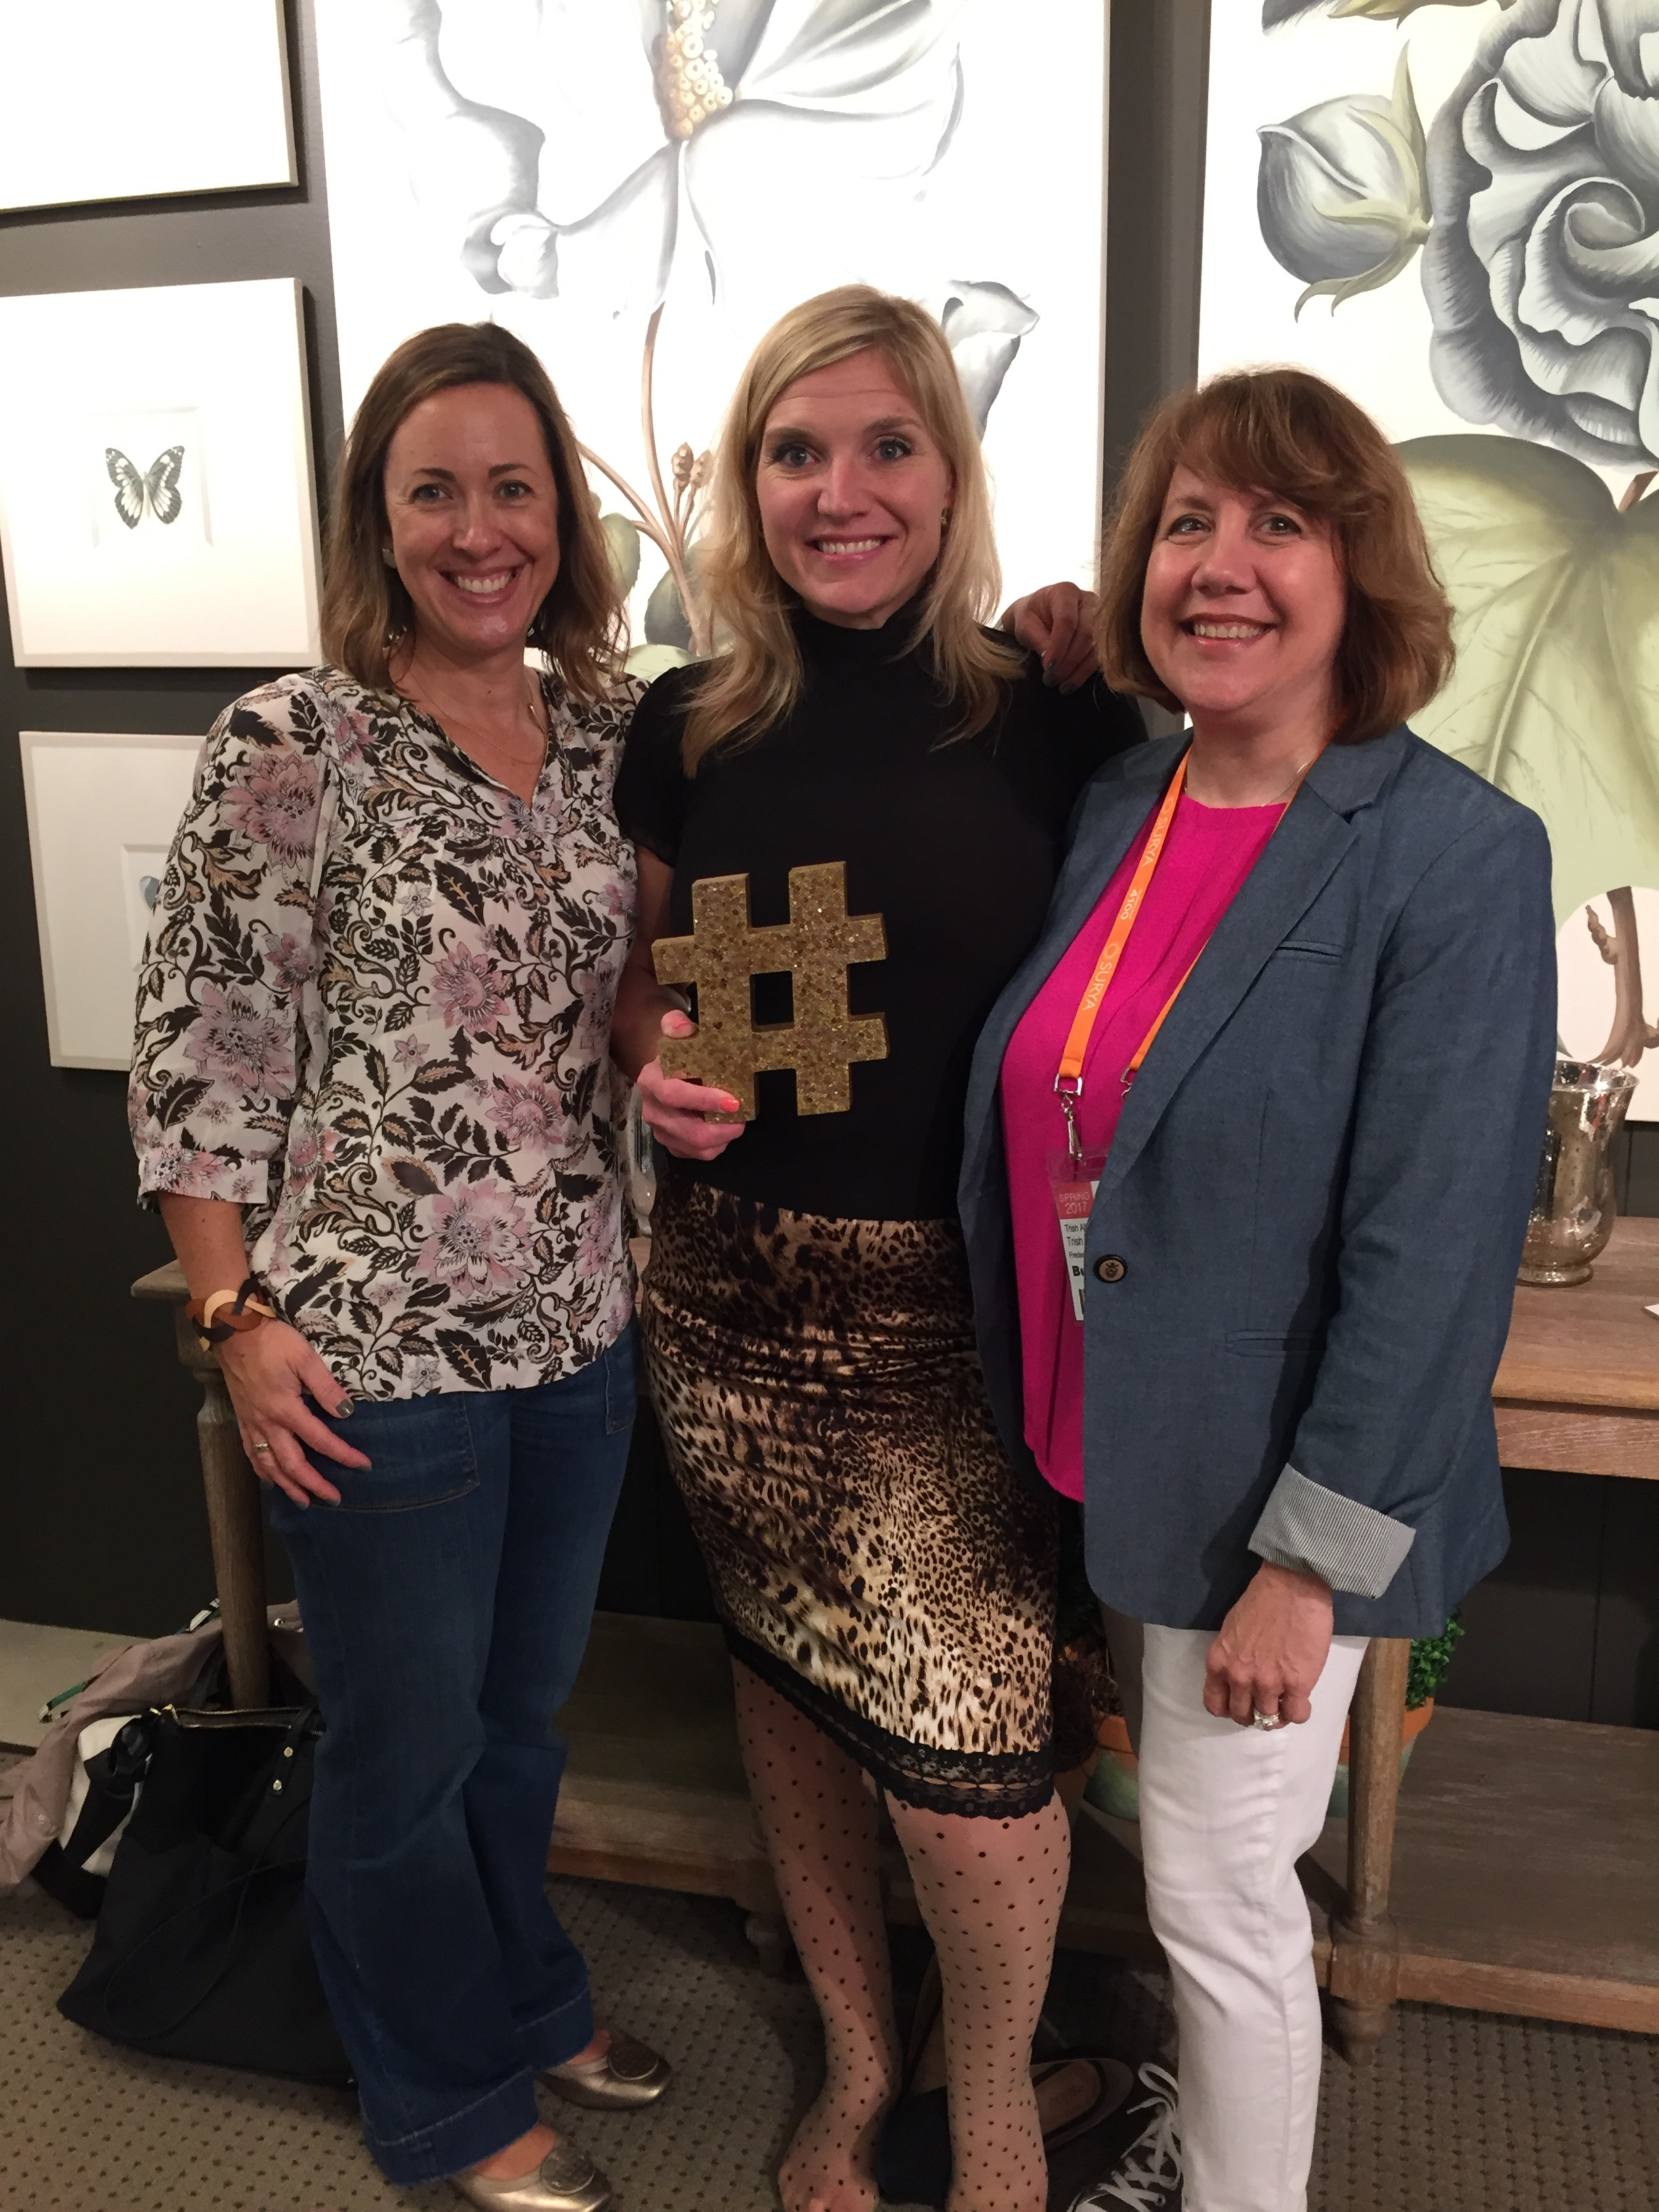 {A visit to High Point Furniture Market included a fun tour with designers.}